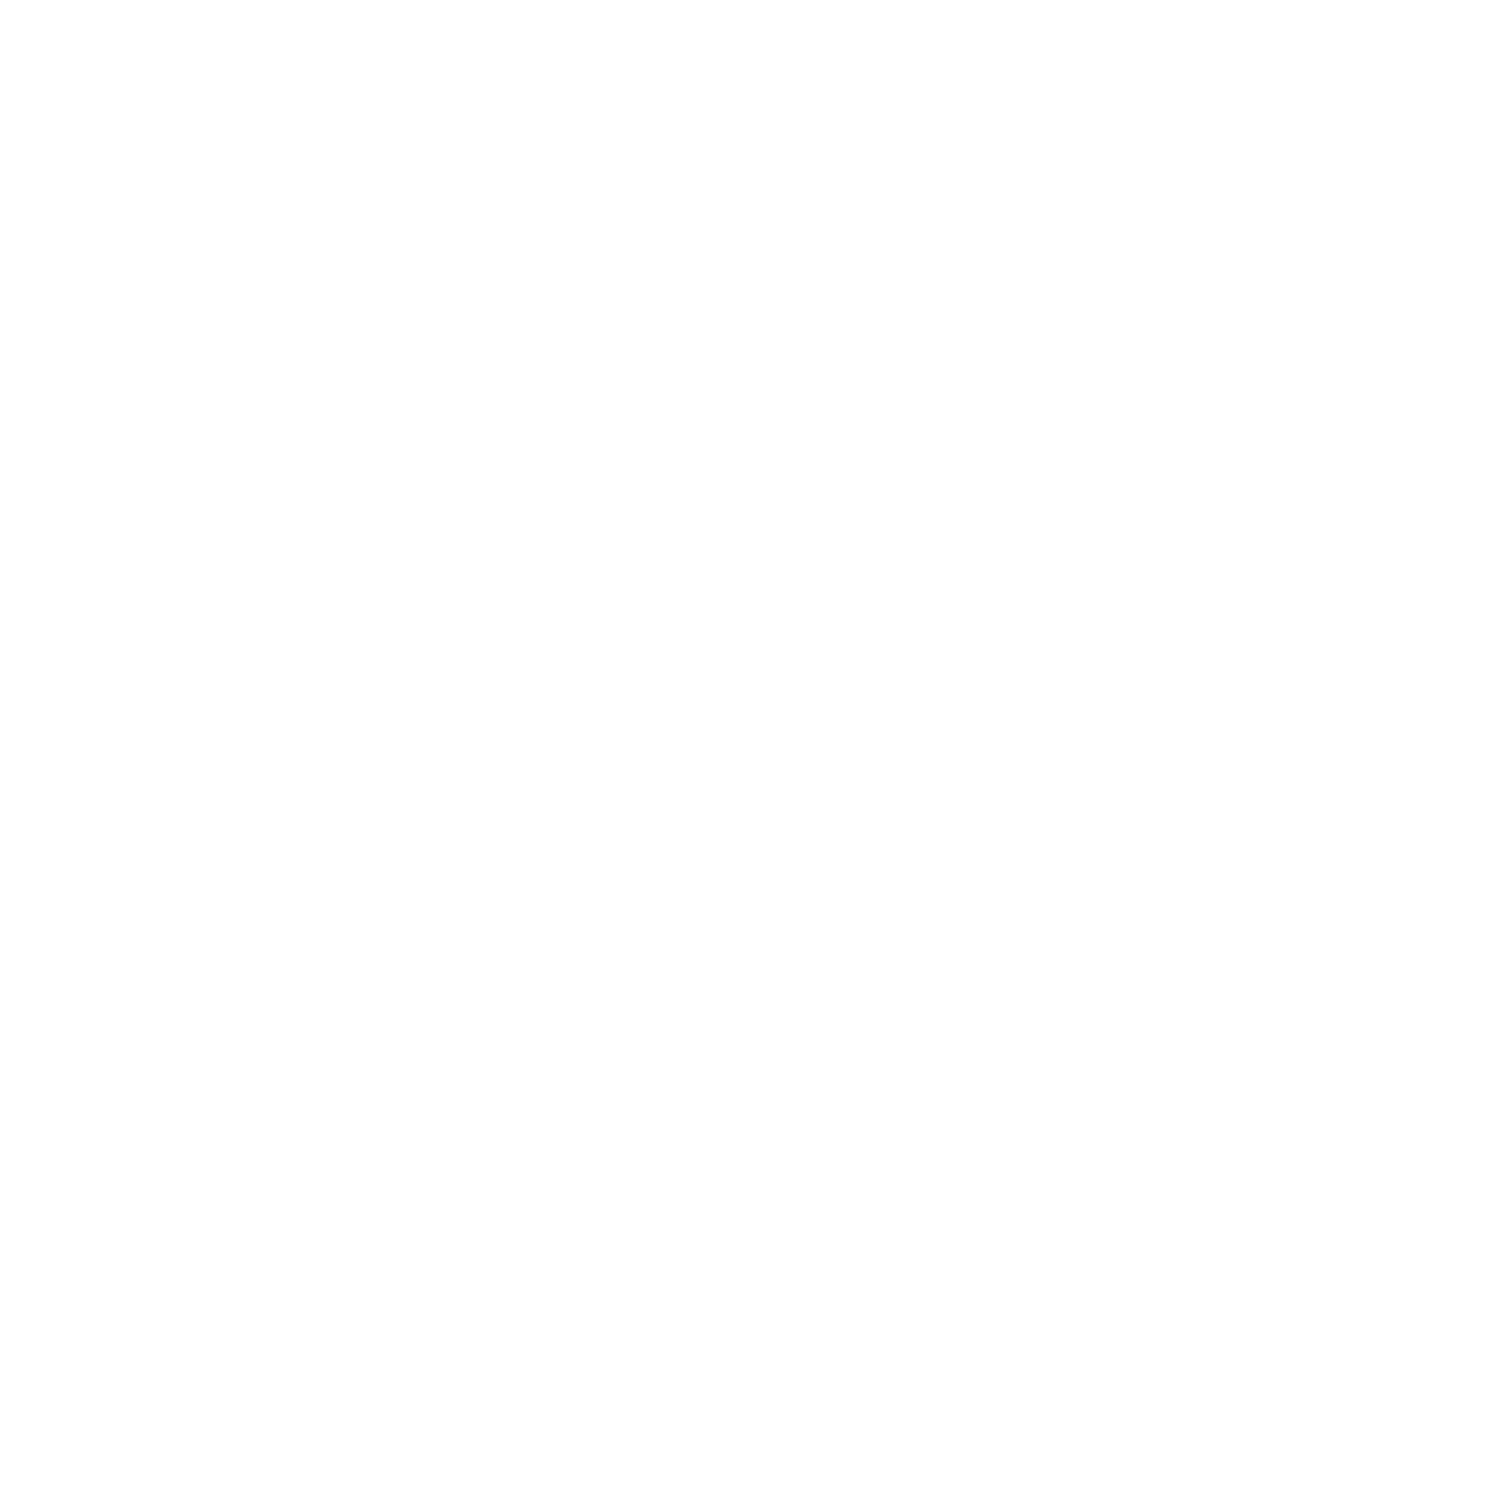 Fry the Coop